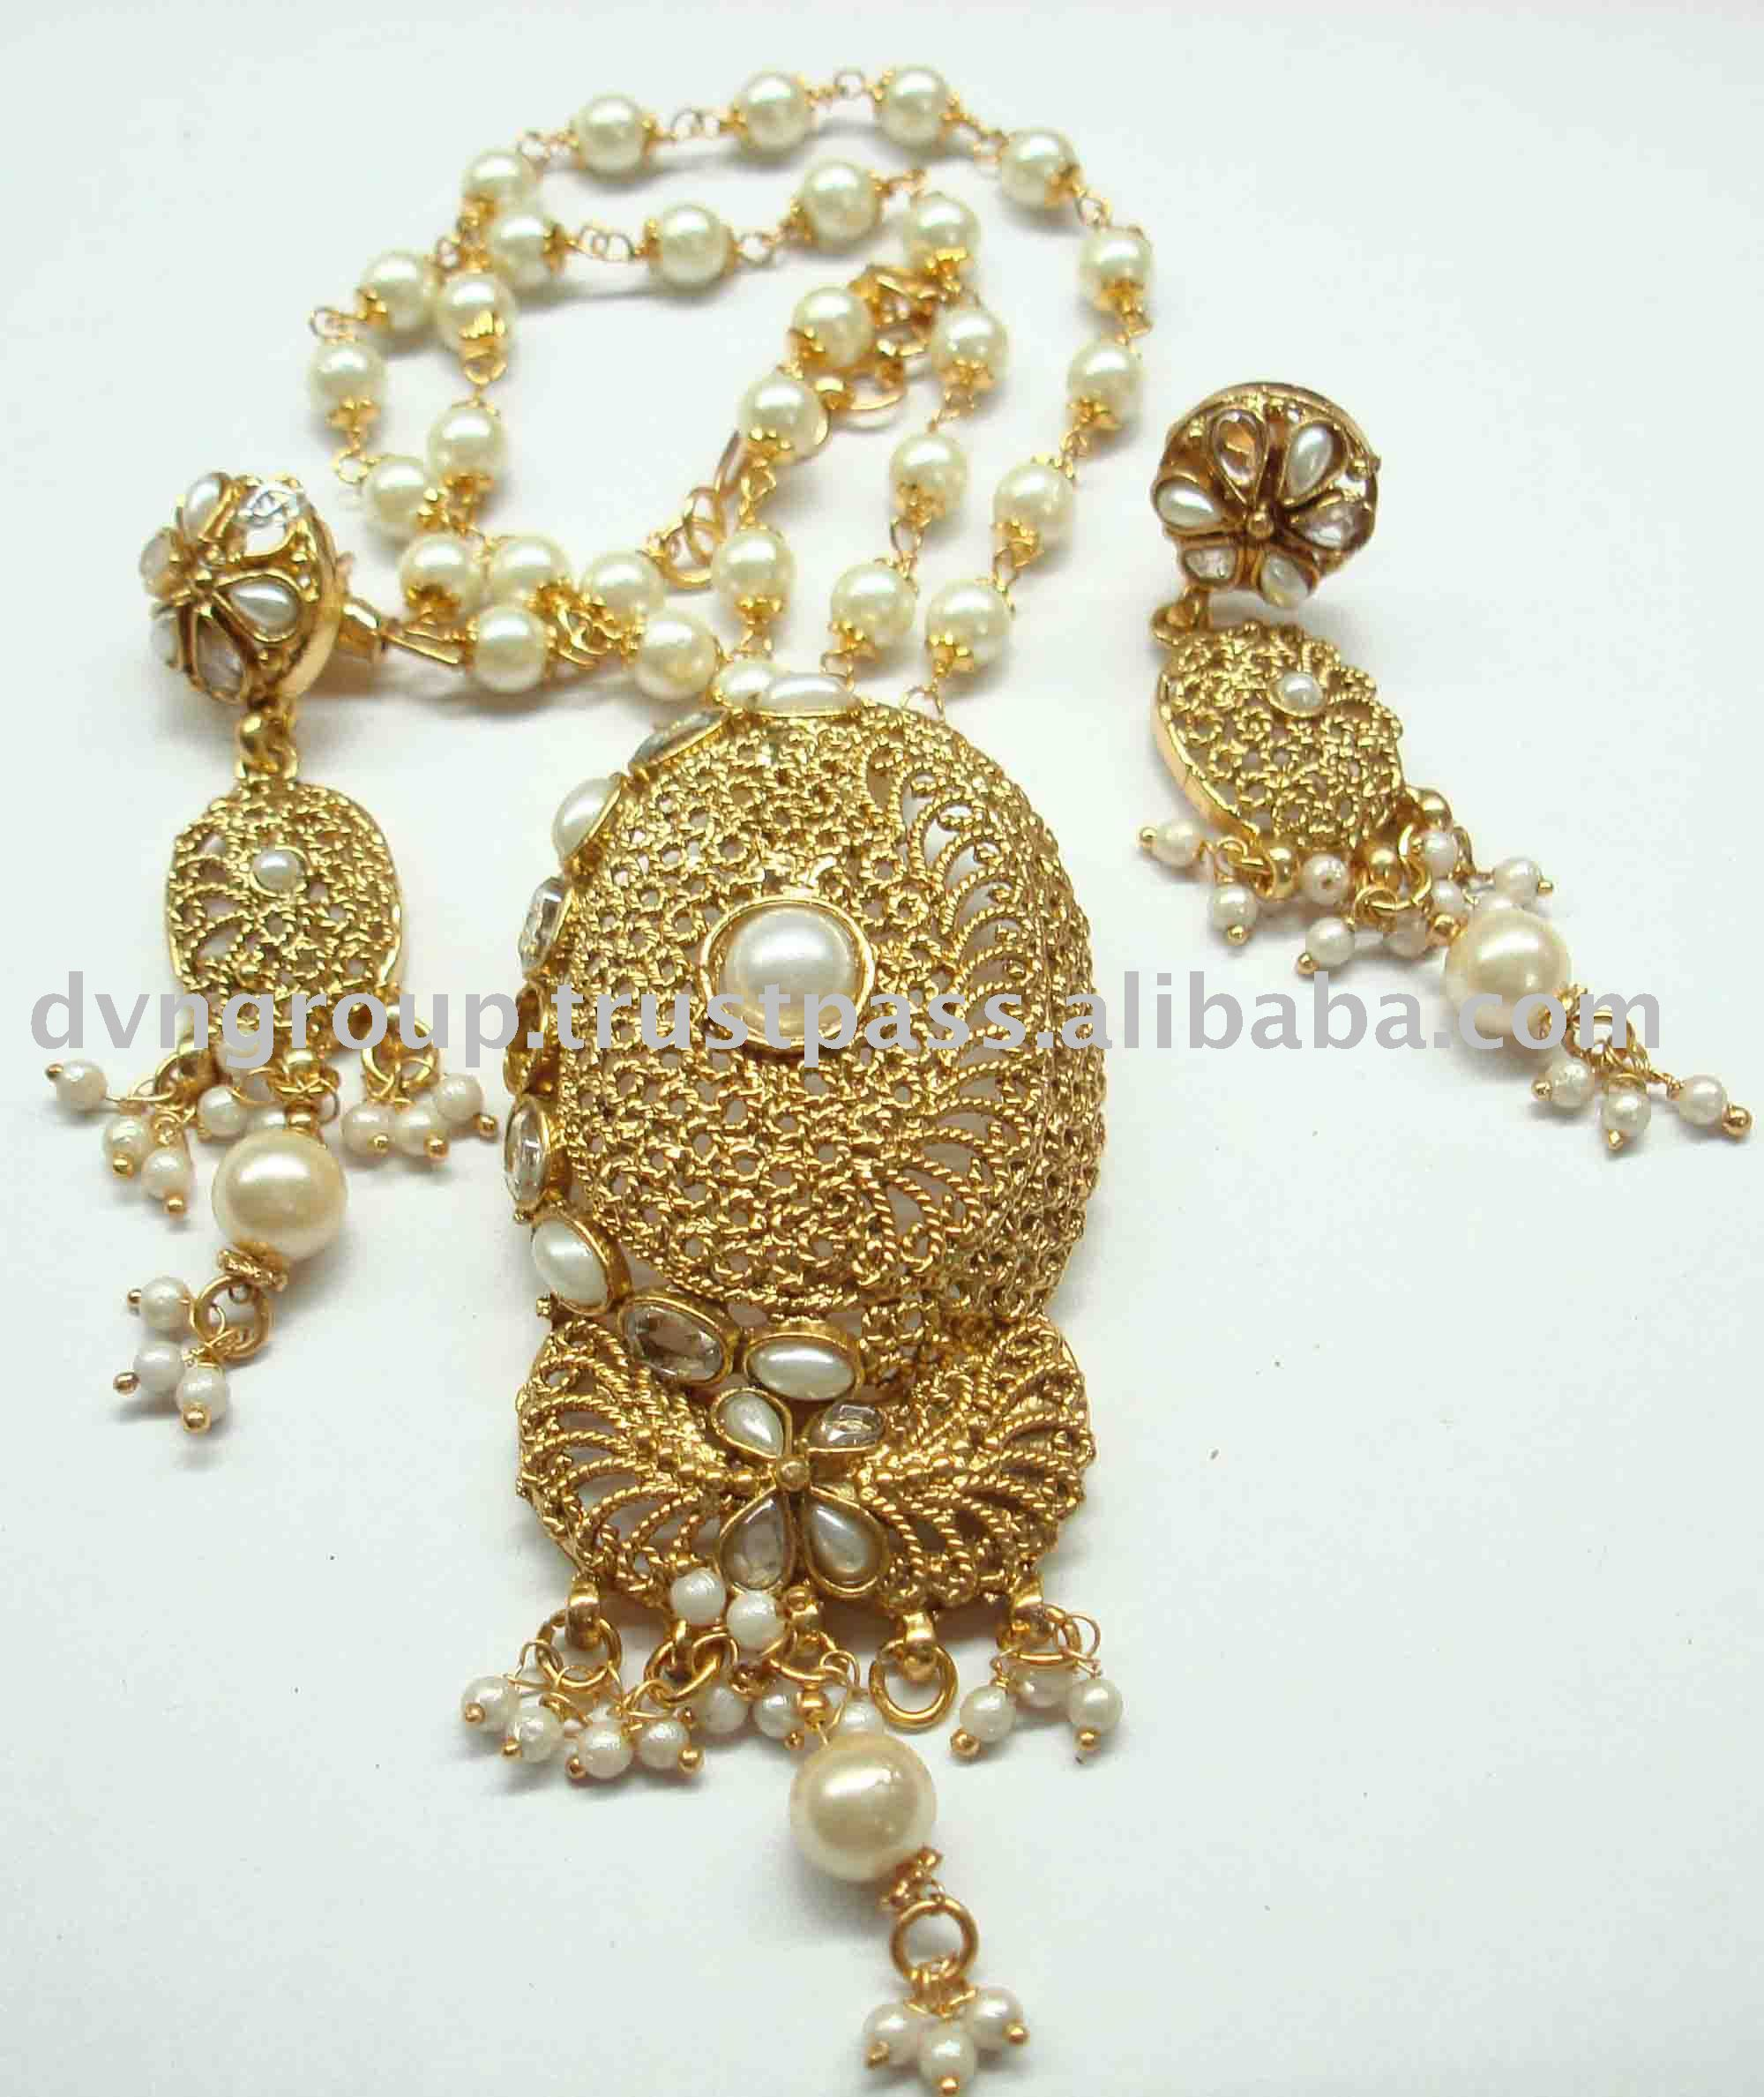 necklace brand fashion jewellery find watches diamond american earring indian jewel and collections jewelry bridal from products set bollywood